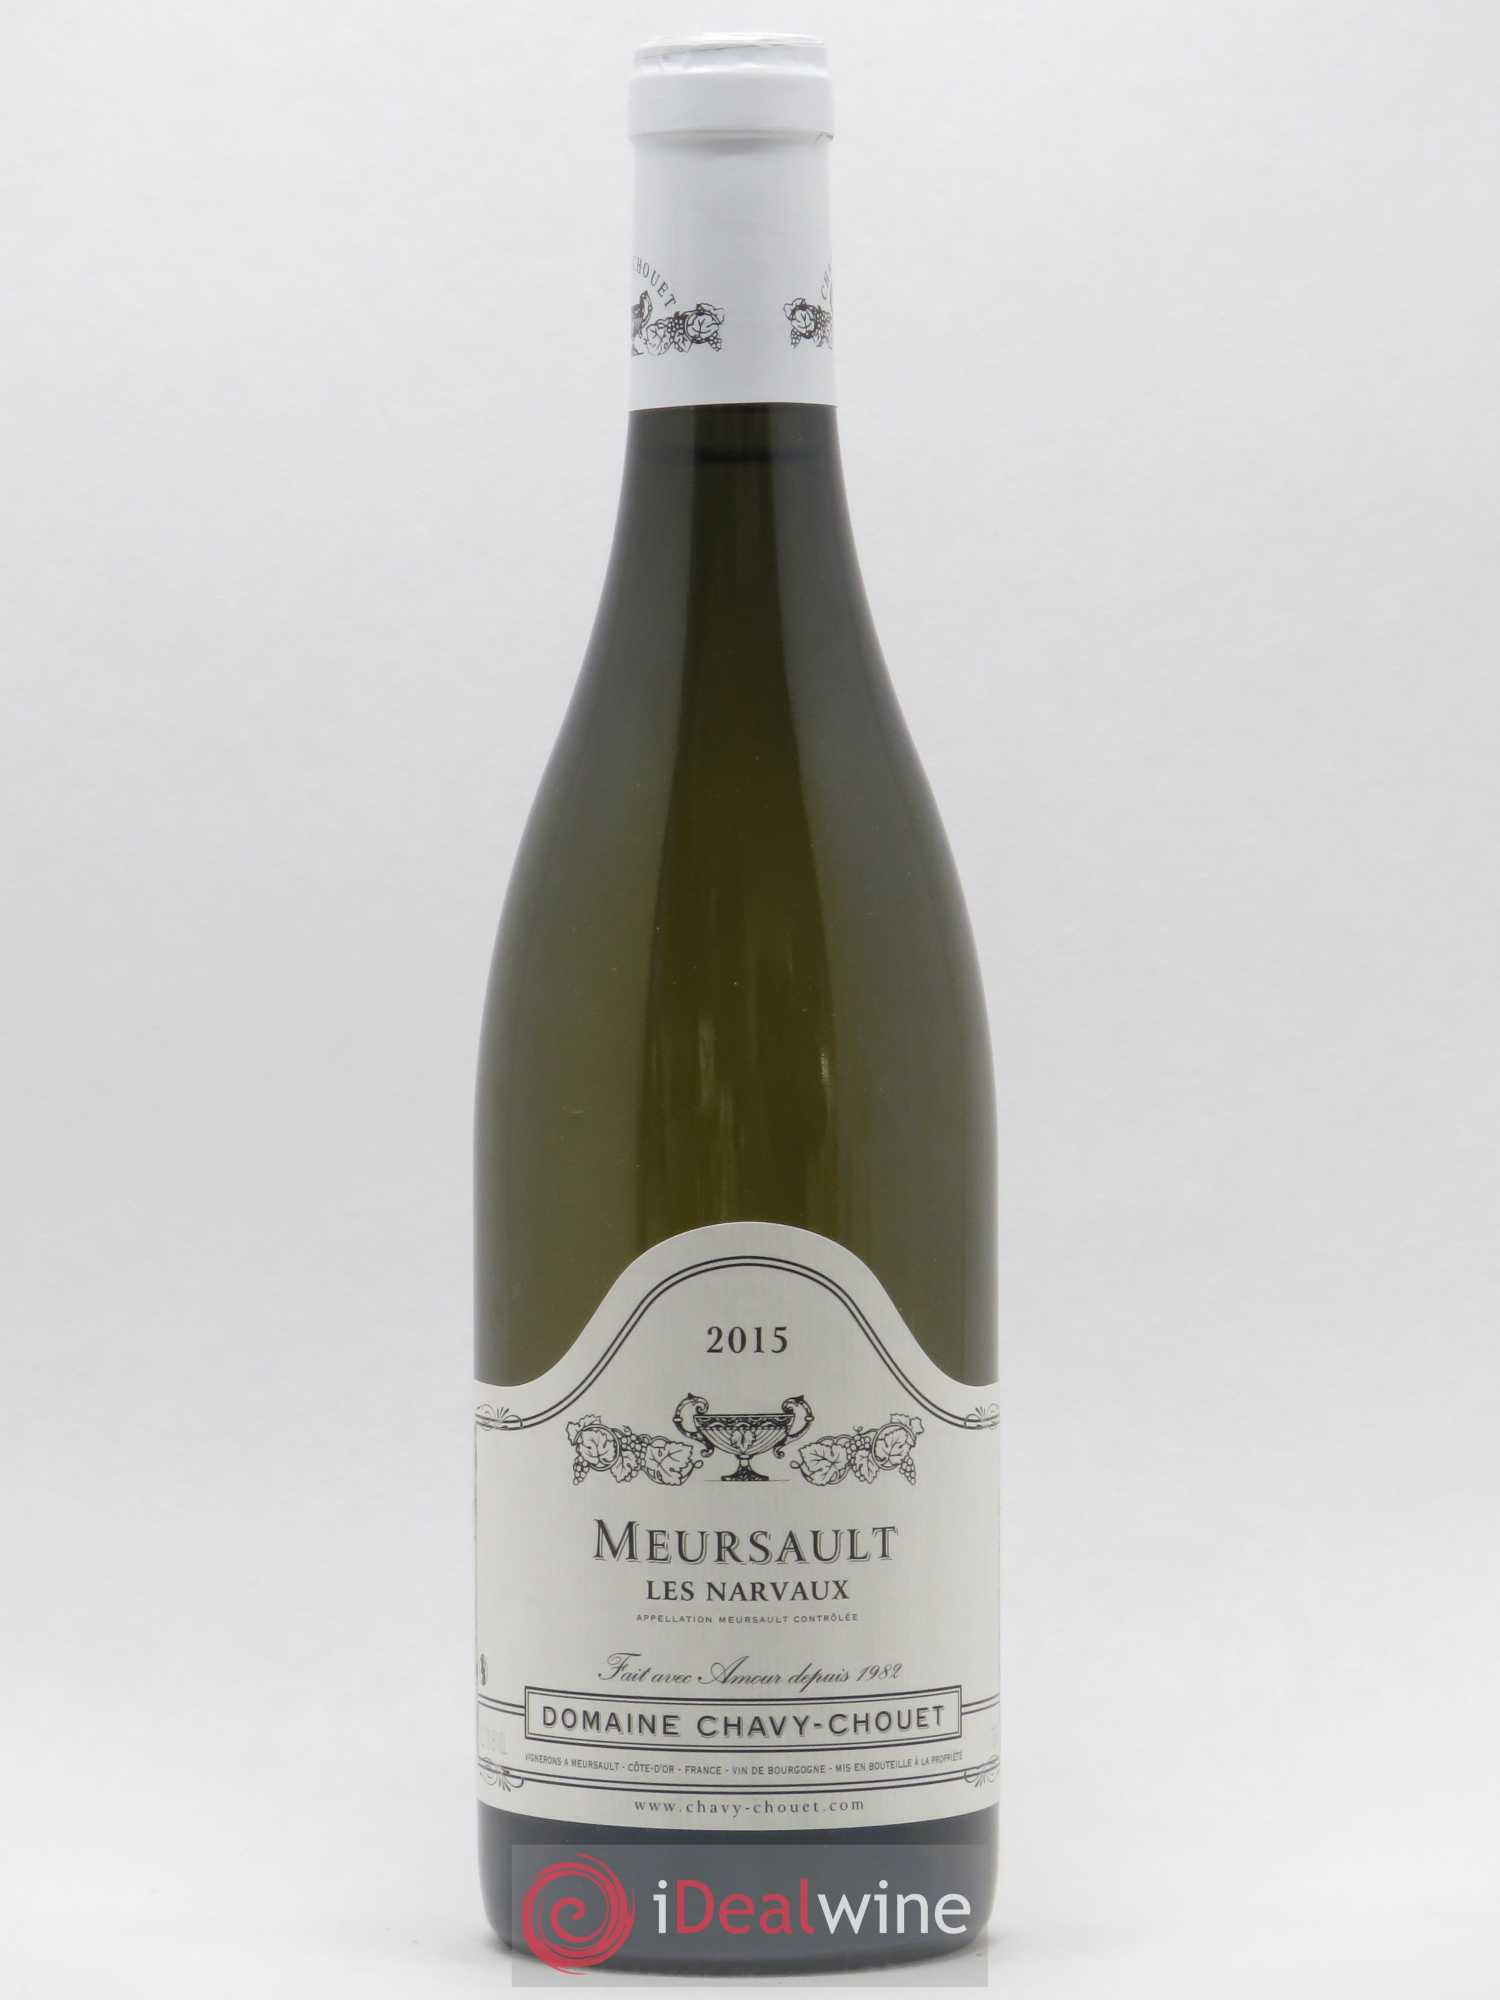 Meursault Les Narvaux Chavy-Chouet  2015 - Lot of 1 Bottle